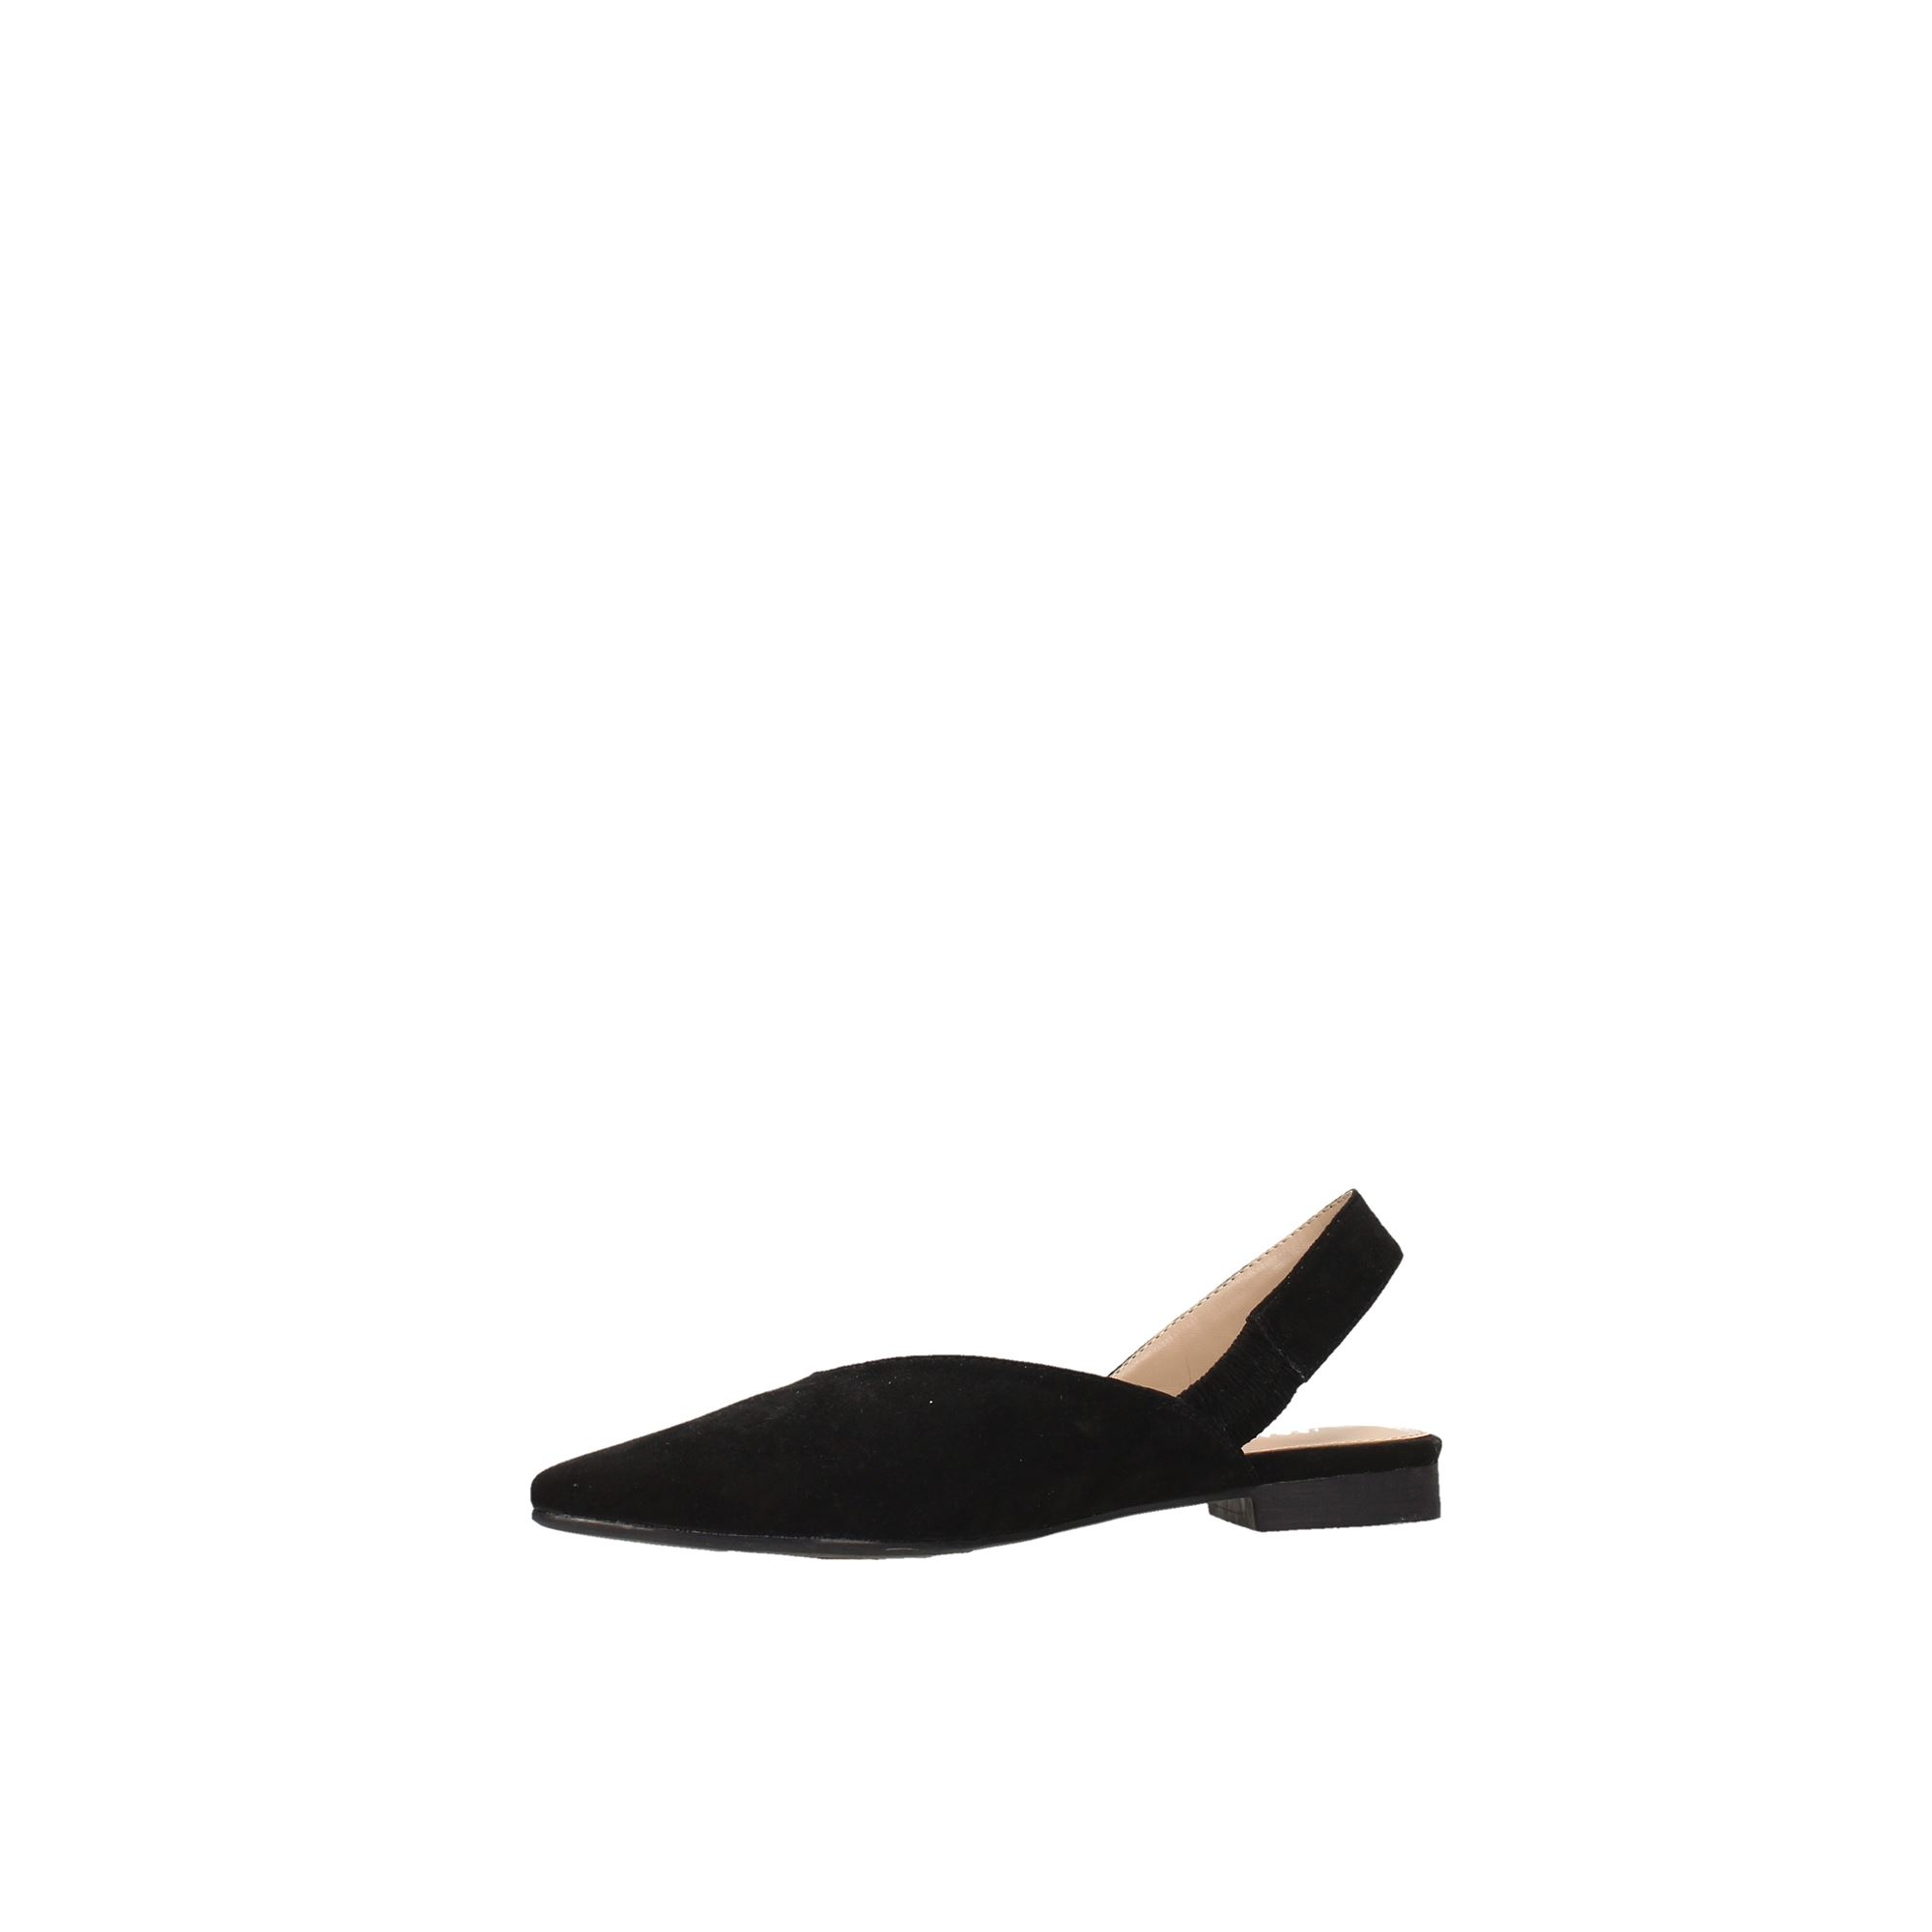 Tata Italia Shoes Woman Sabot Black DW503-26